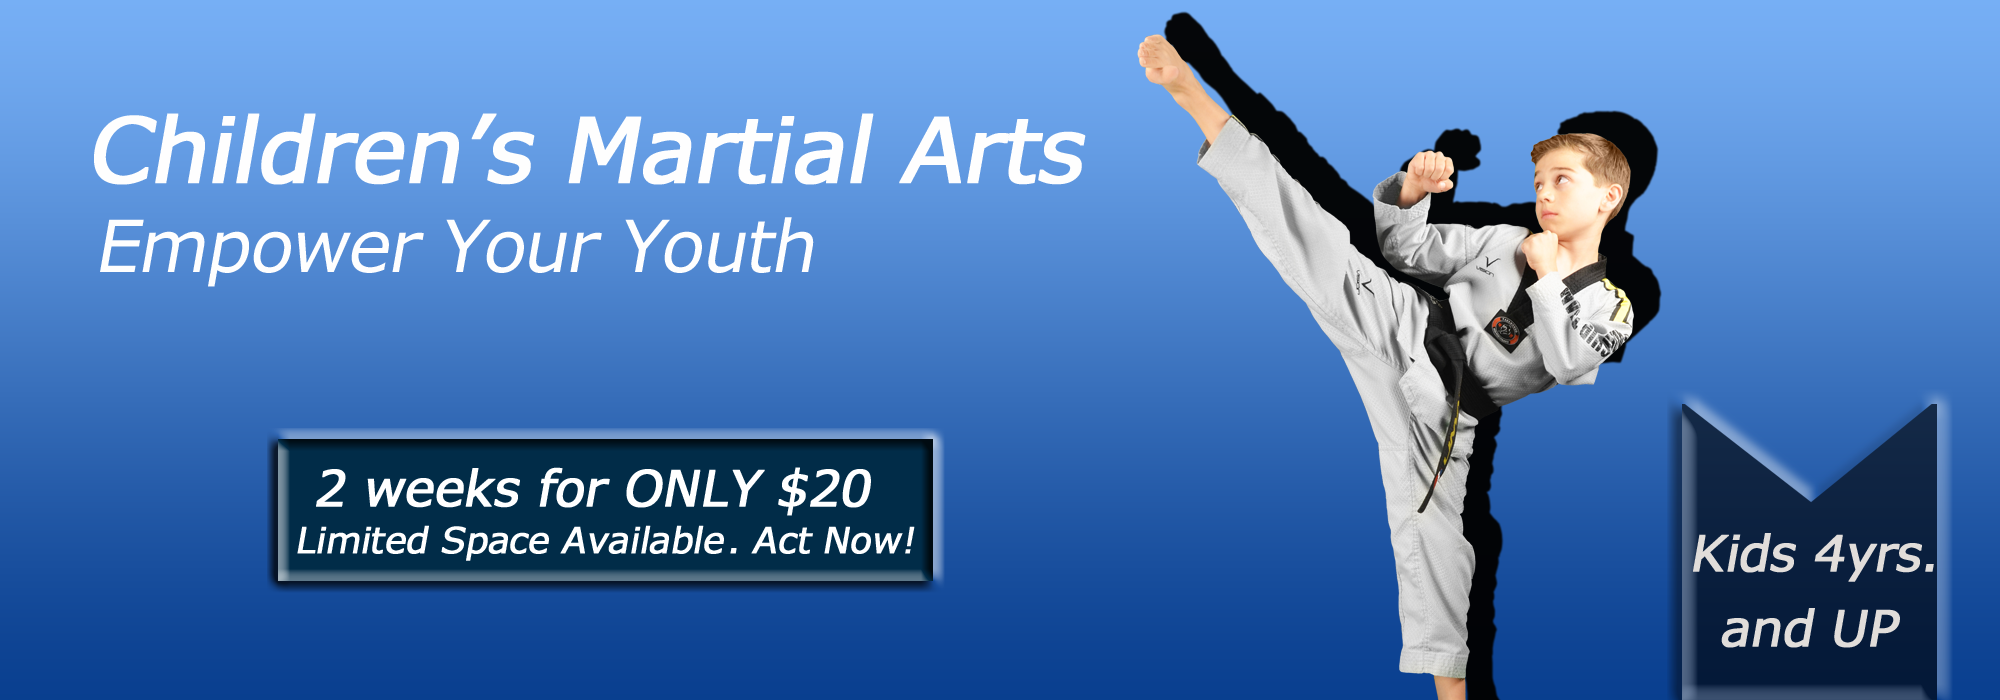 kid martial art classes in Warwick & Monroe